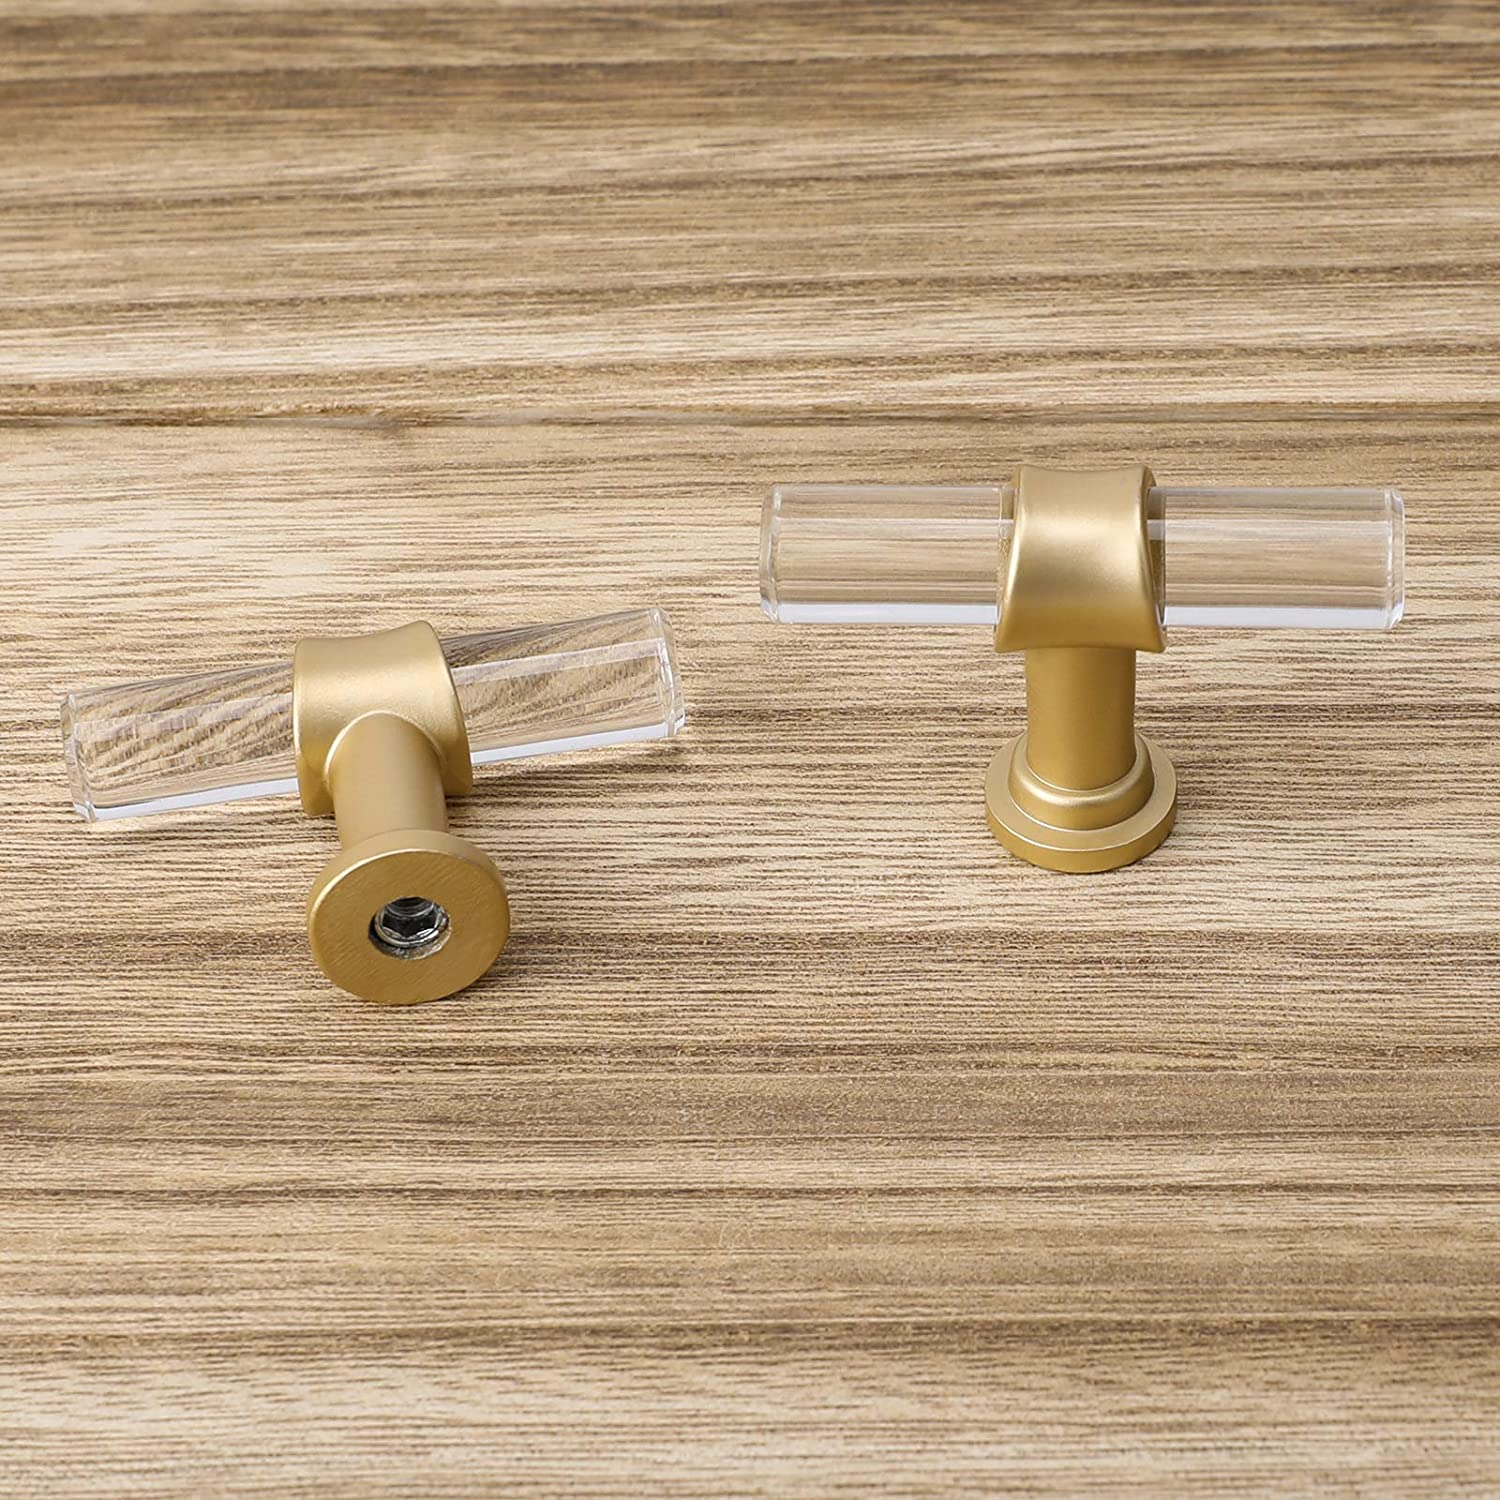 Clear Acrylic Pulls Drawer Handles Gold Kitchen Hardware Pull for Cabinet 5 Pack-Haliwu//3 inch Dresser Pulls